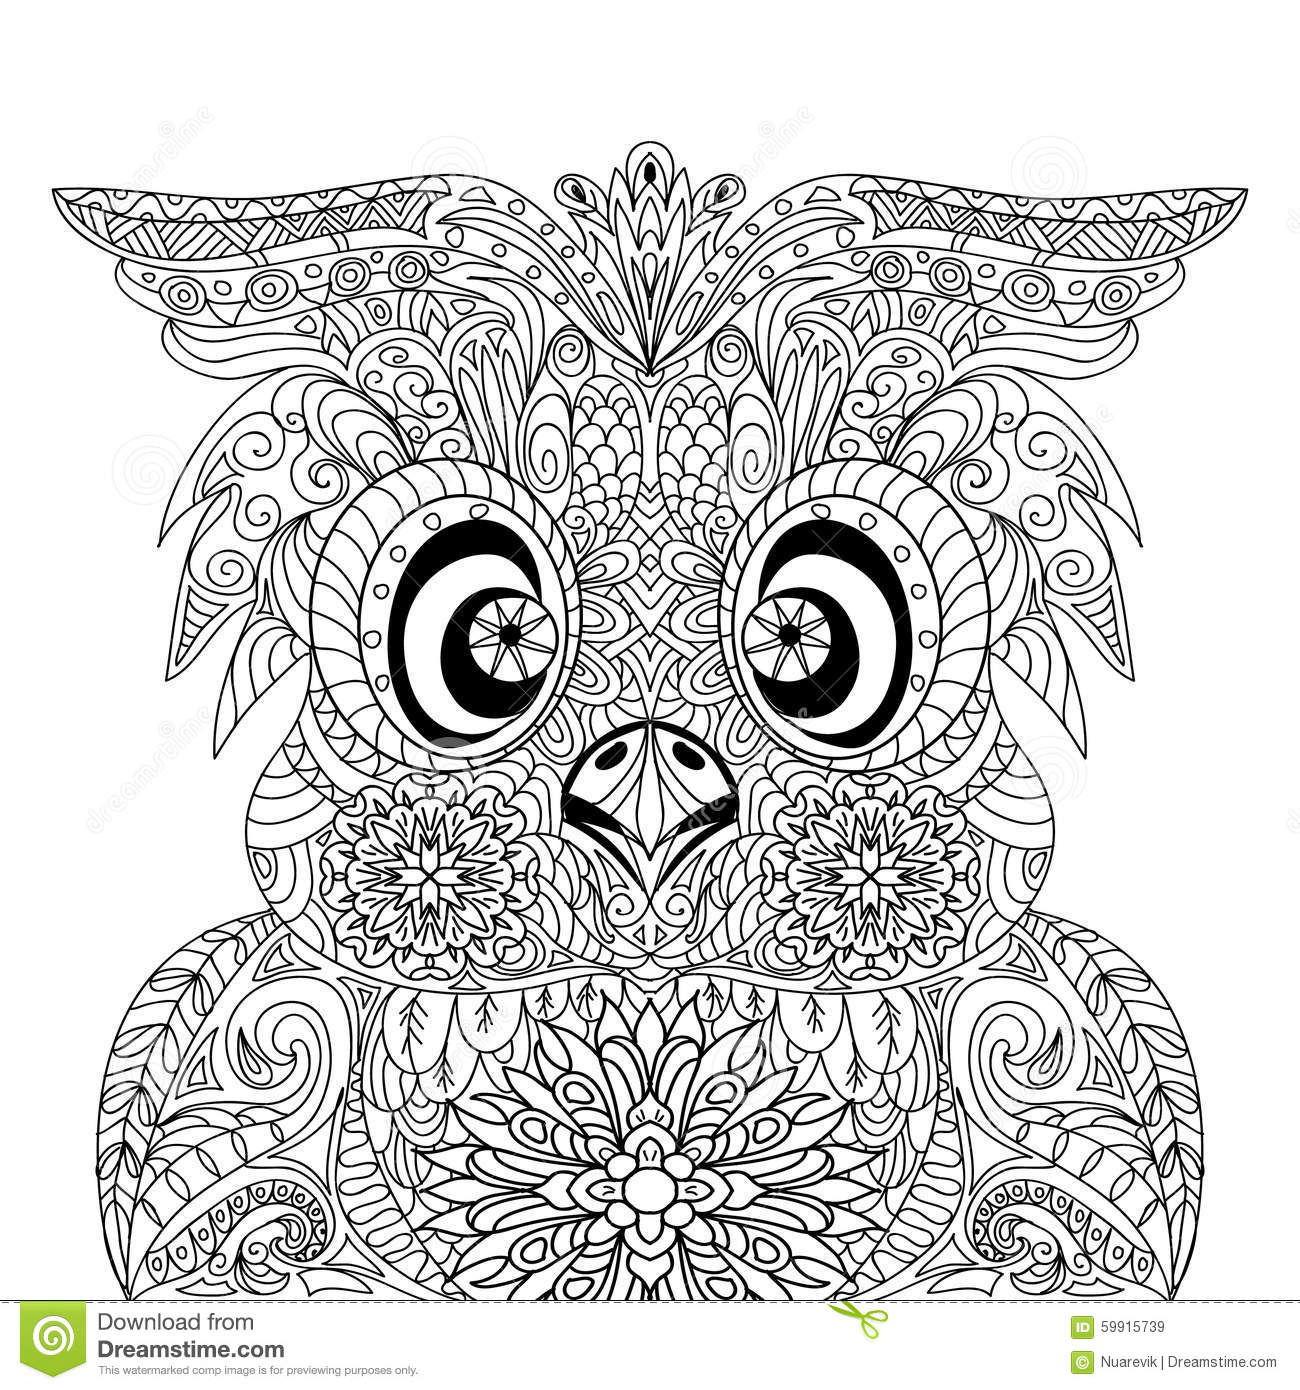 Coloring Pages For Adults Animals German Shepherd